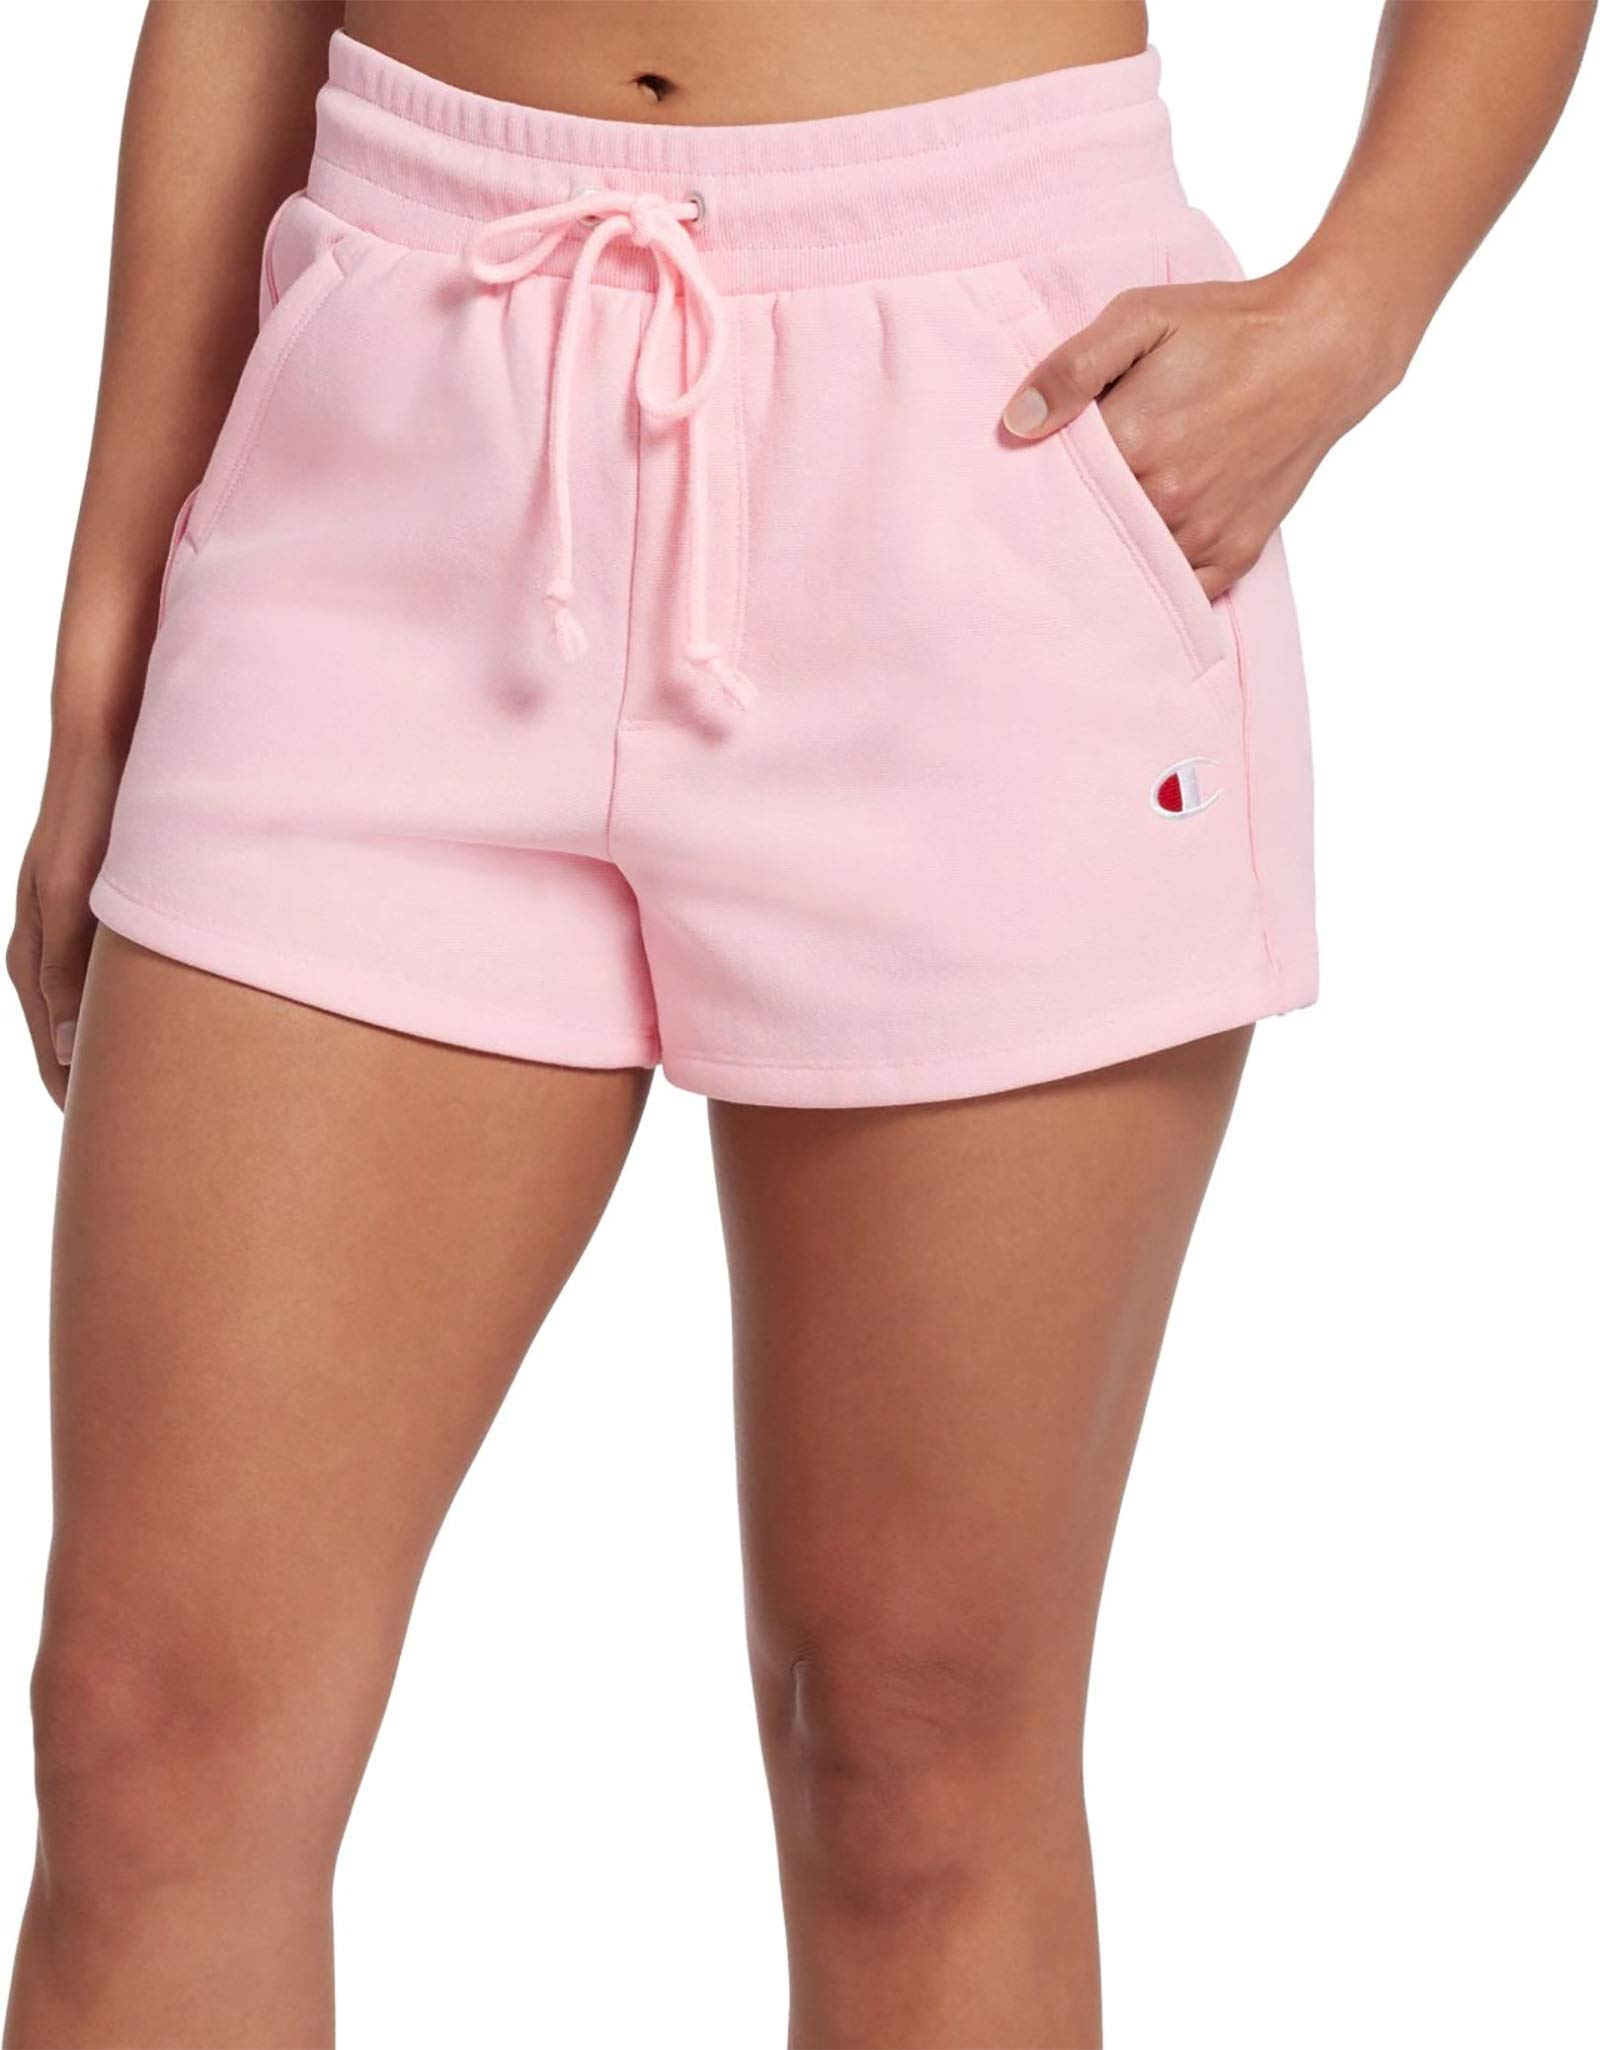 Champion LIFE Women's Reverse Weave Shorts (C Logo/Pink Candy, XX-Large) by Champion LIFE